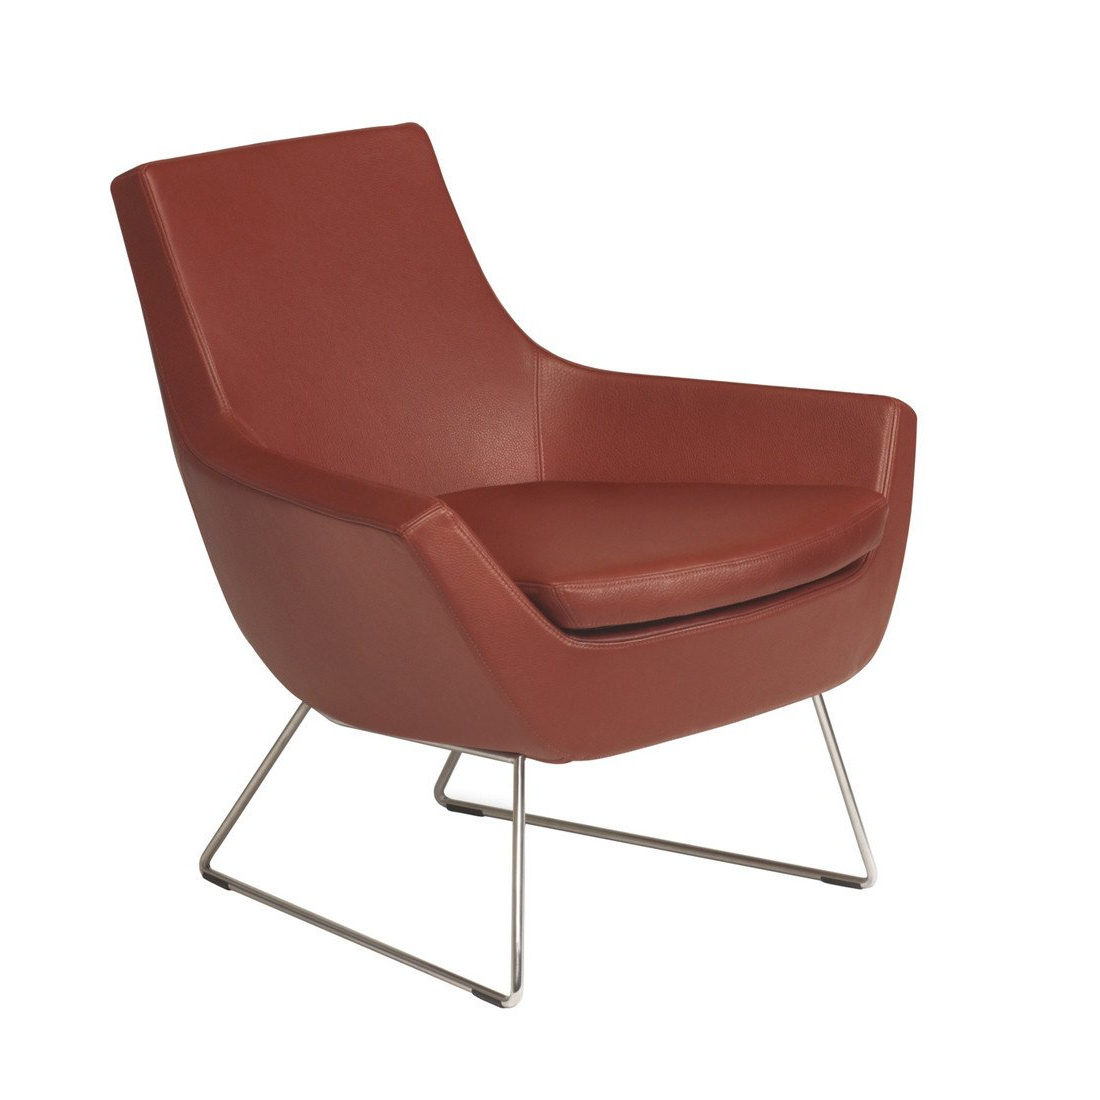 Well Liked London Optical Sofa Chairs Pertaining To Happy Easy Chair Low Backswedese — Haus® (View 15 of 20)